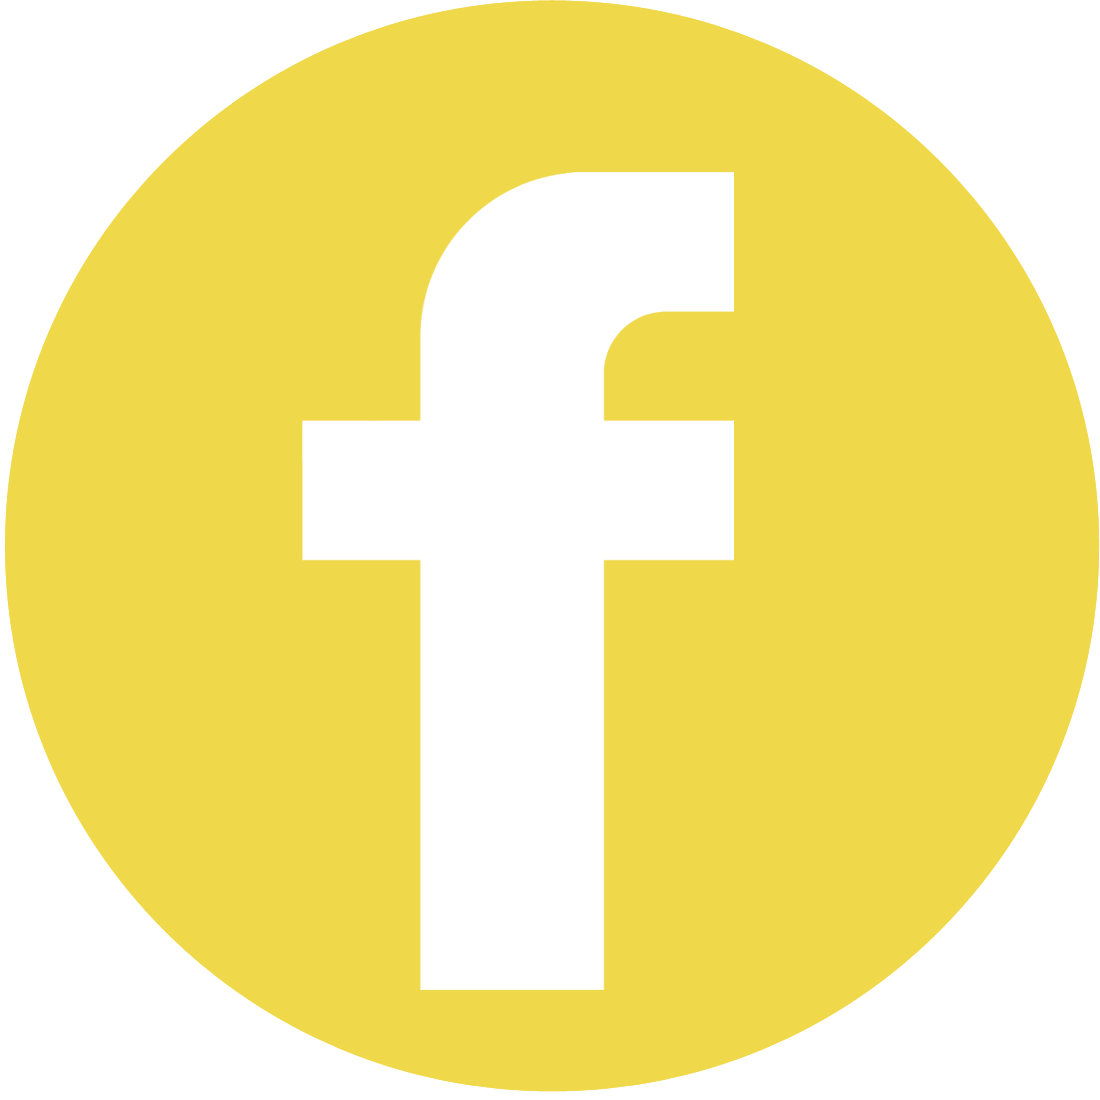 White Facebook F Icon Share On Facebook Fil Am Learners